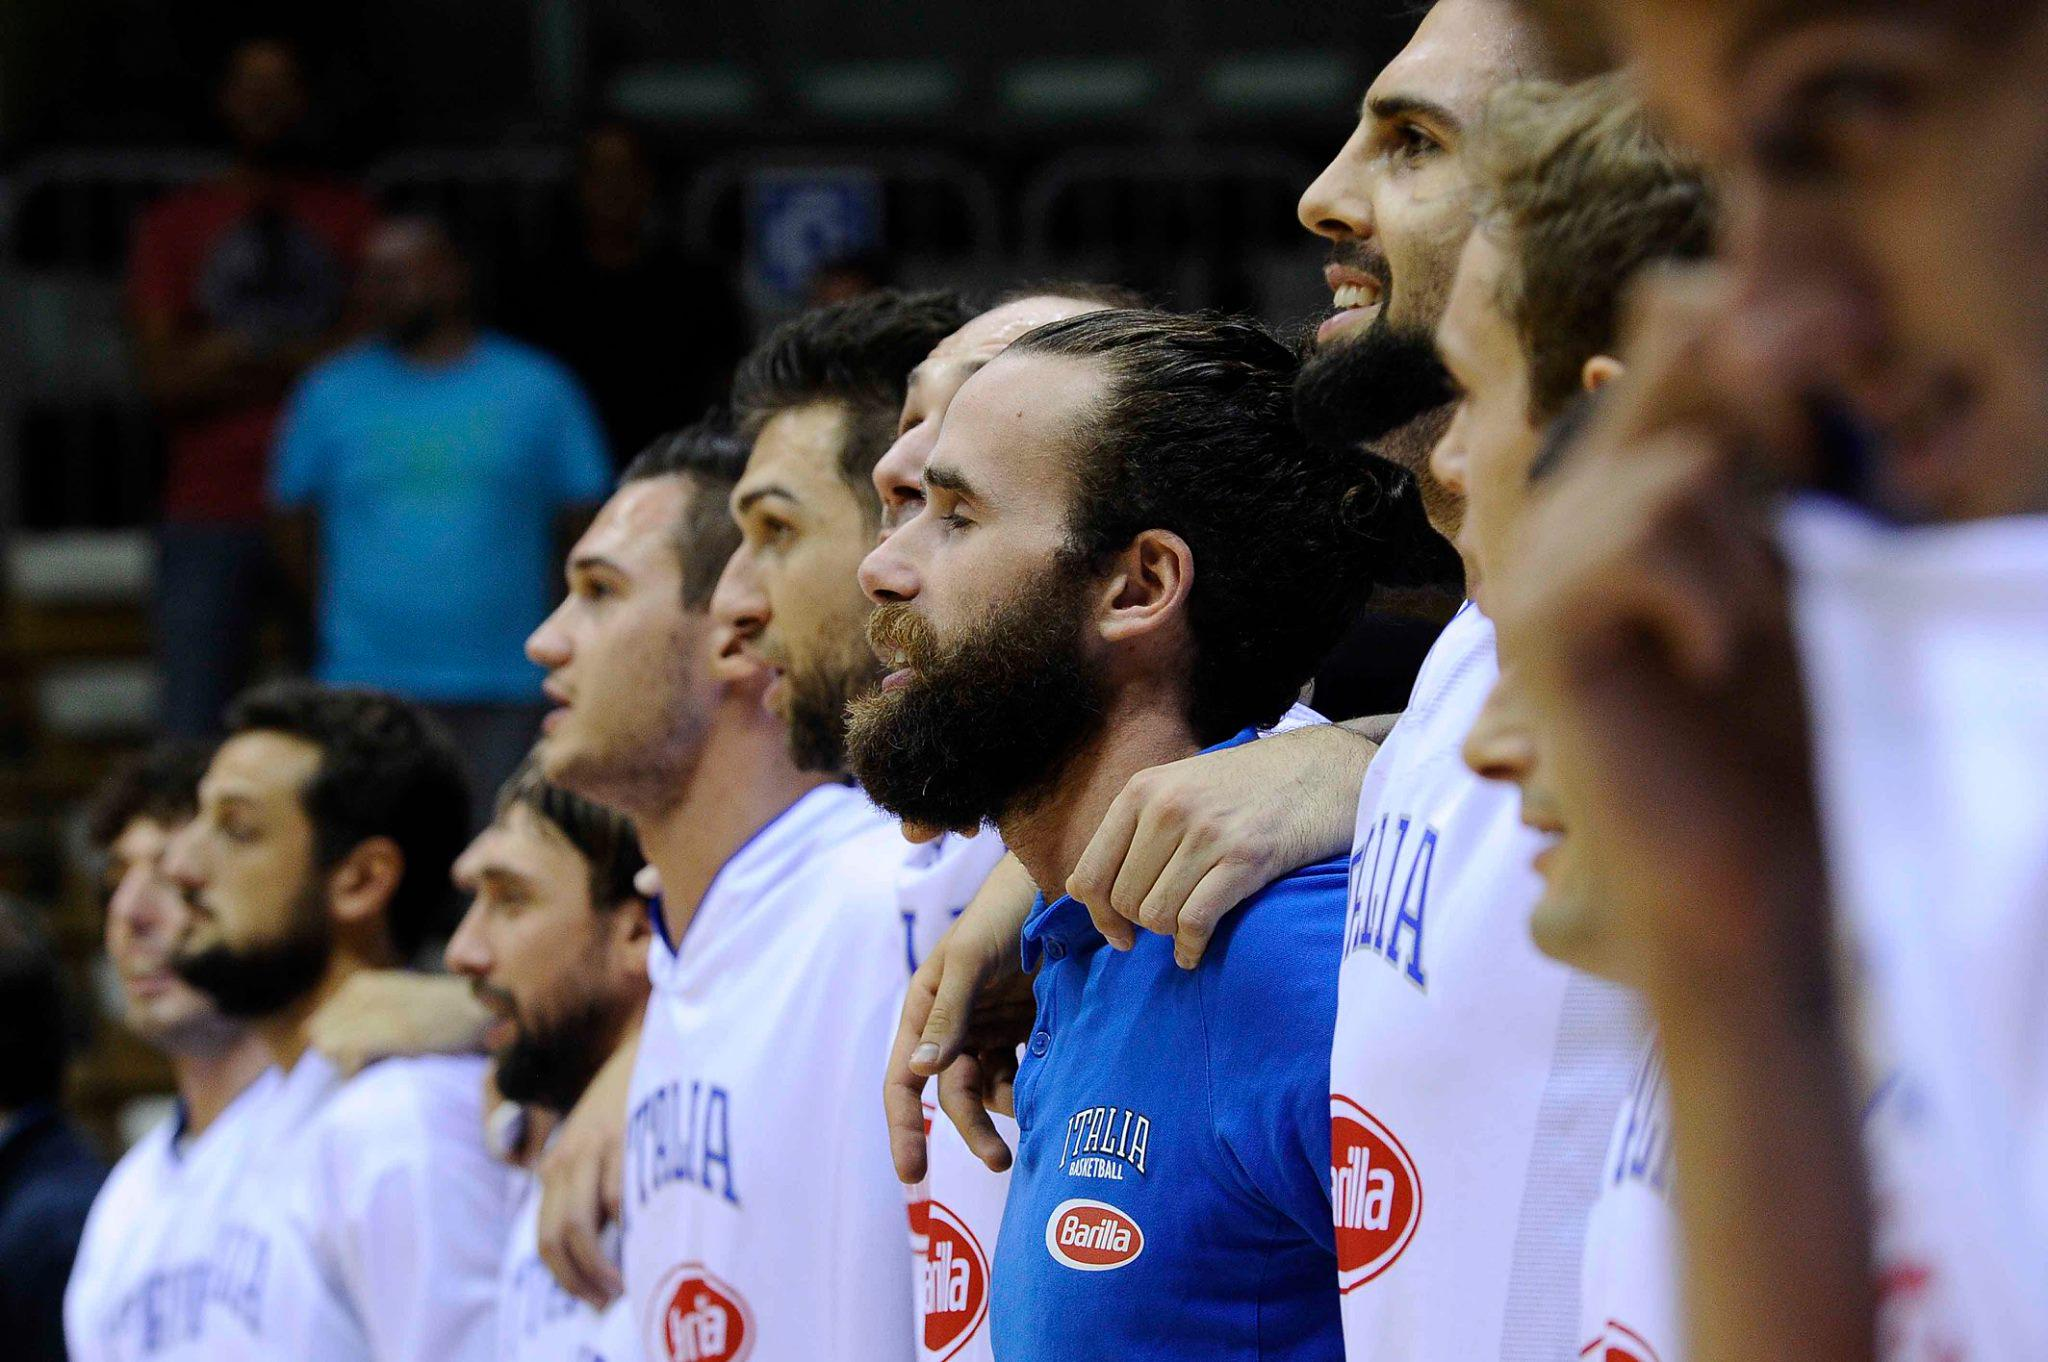 Pallacanetro ITALIA-Turchia Rojadirecta, dove Streaming Gratis Video Diretta TV oggi